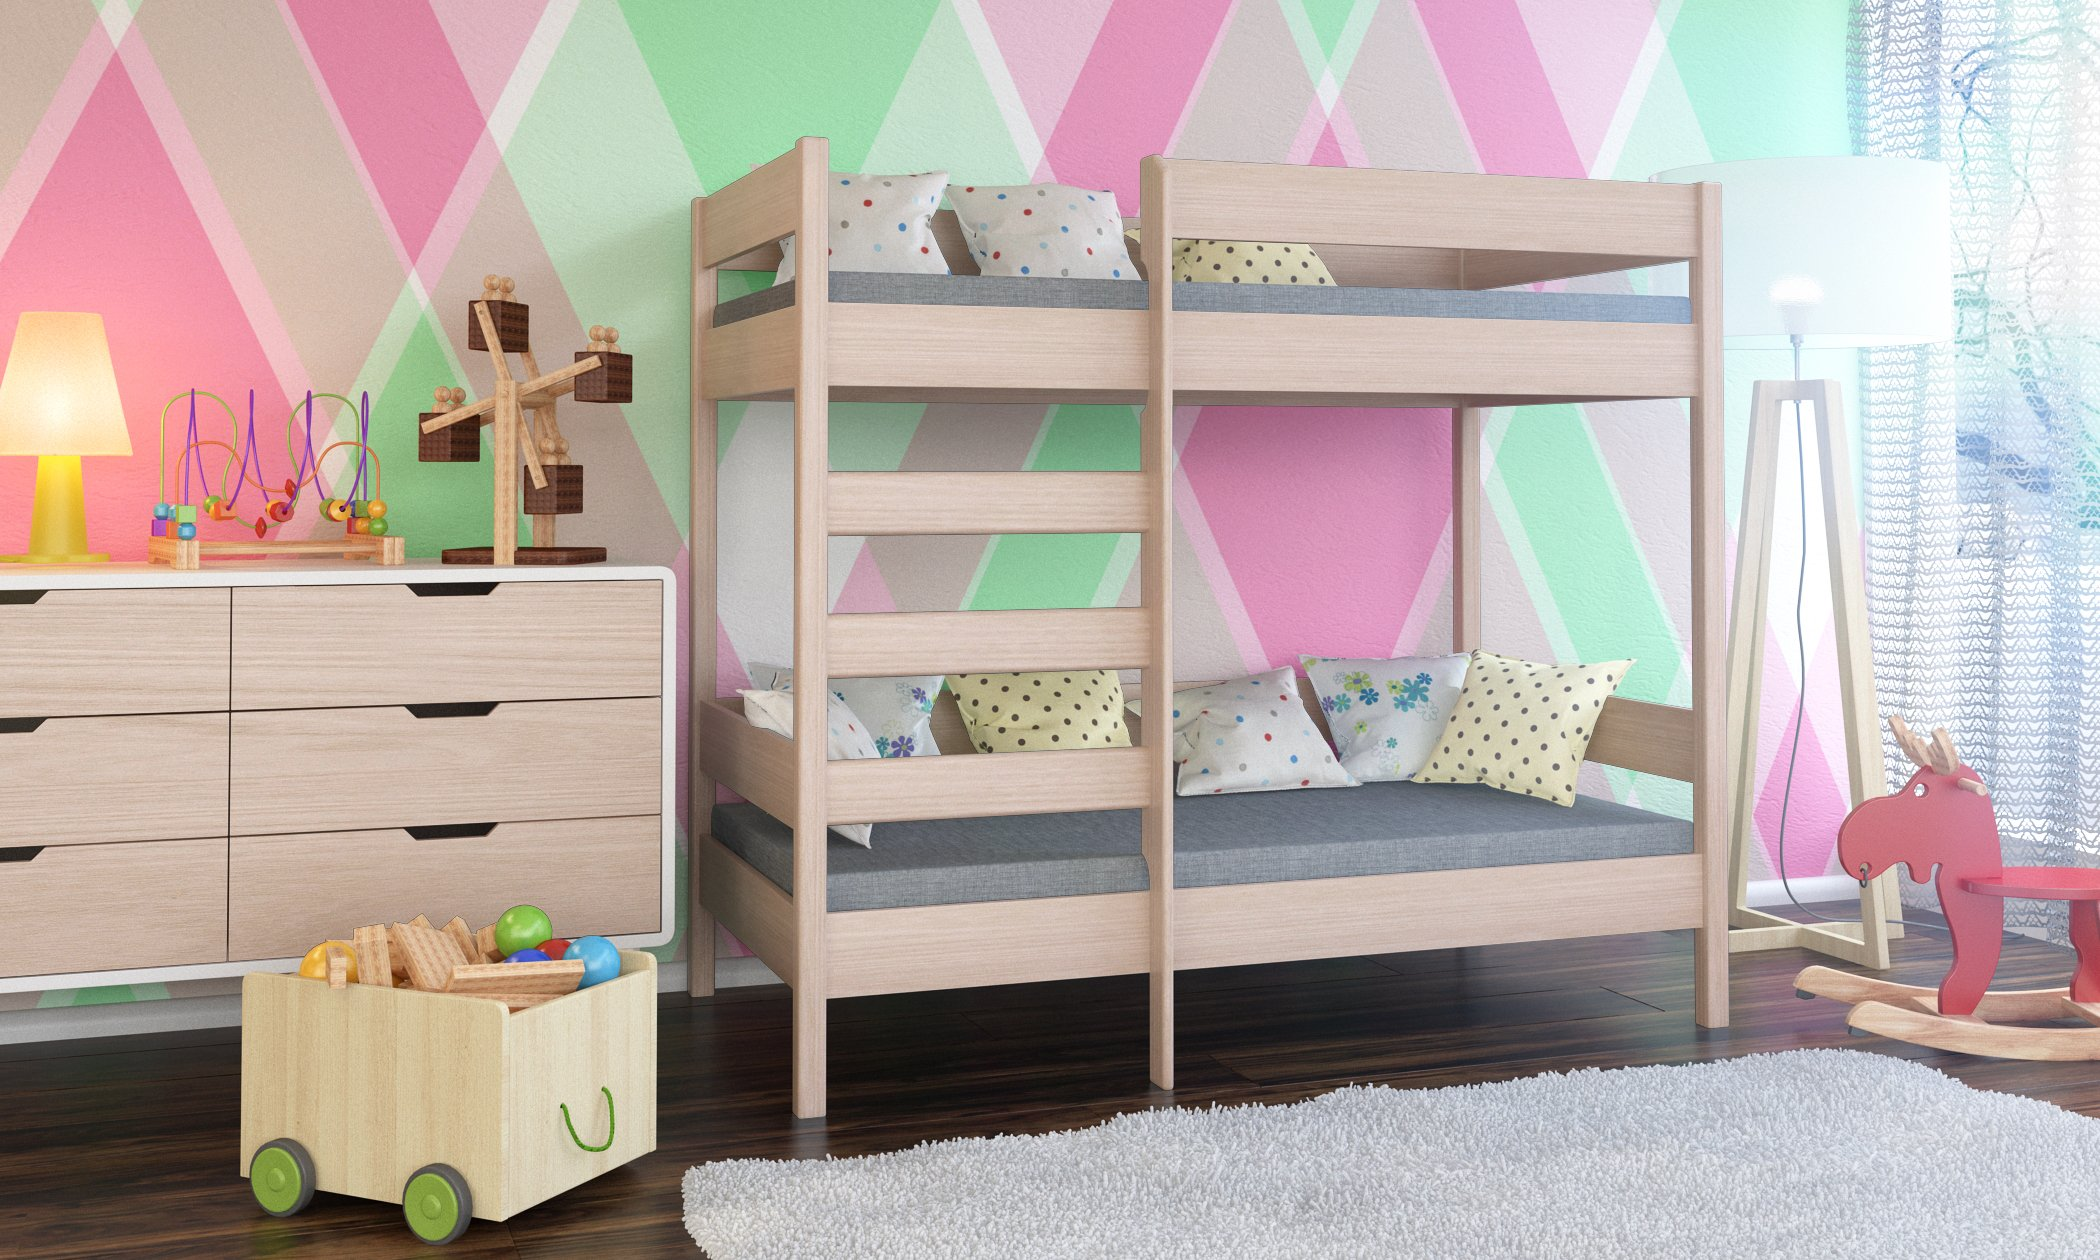 WNM Group Bunk bed Dino high two sleeper front entrance with 2 mattress (160x80x160, Bleached Oak) WNM Group Leg height 160 cm & Bedframe up to 150 kg Legs and ladder made of solid wood 2 Foam mattress included 2